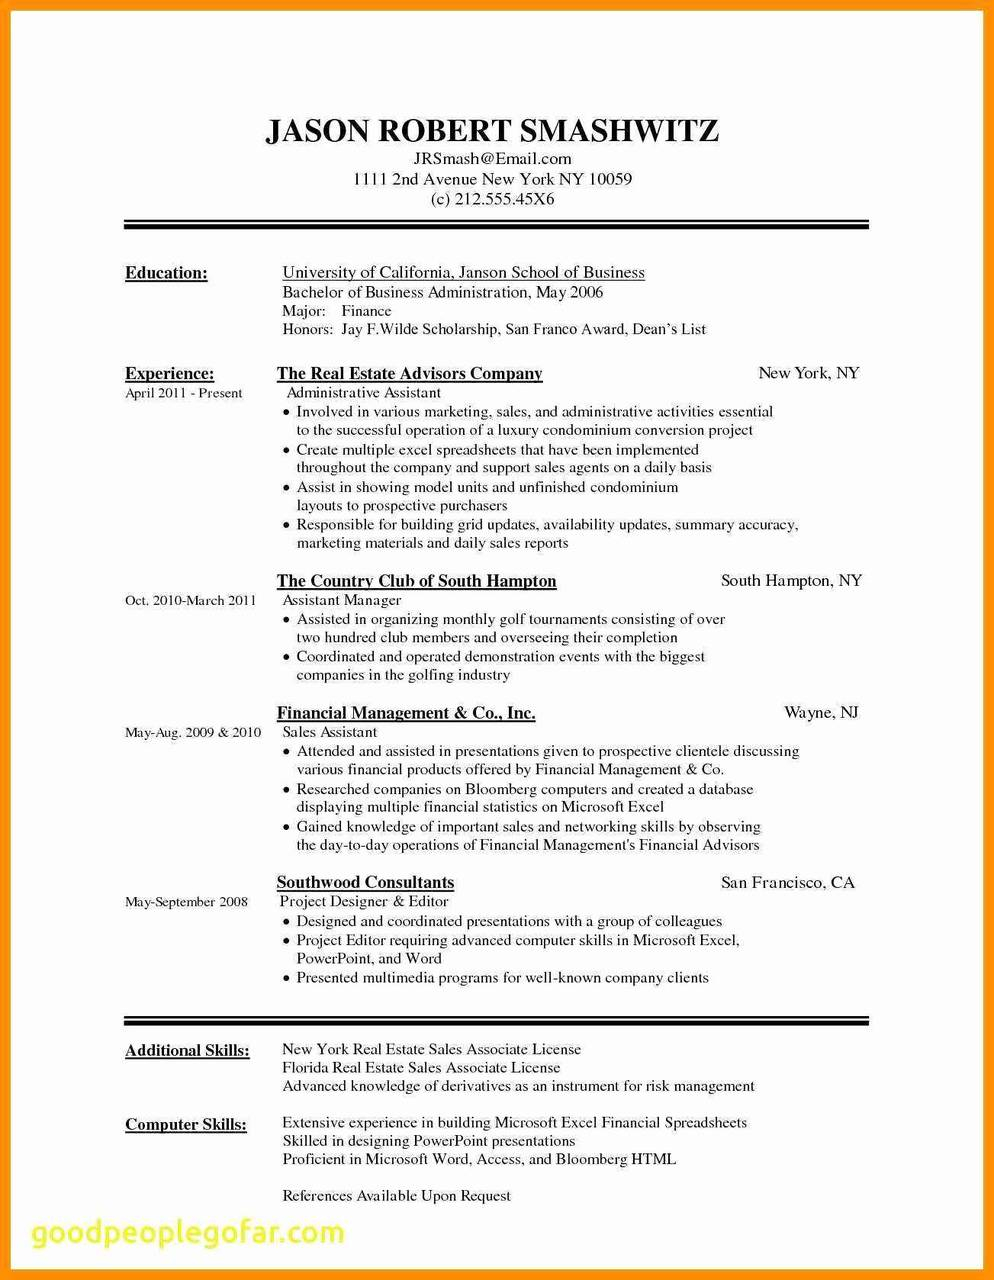 mini resume template Collection-Mini Resume Template Best Where Can I Get A Free Resume Template Beautiful Ivoice Template 0d 15-a